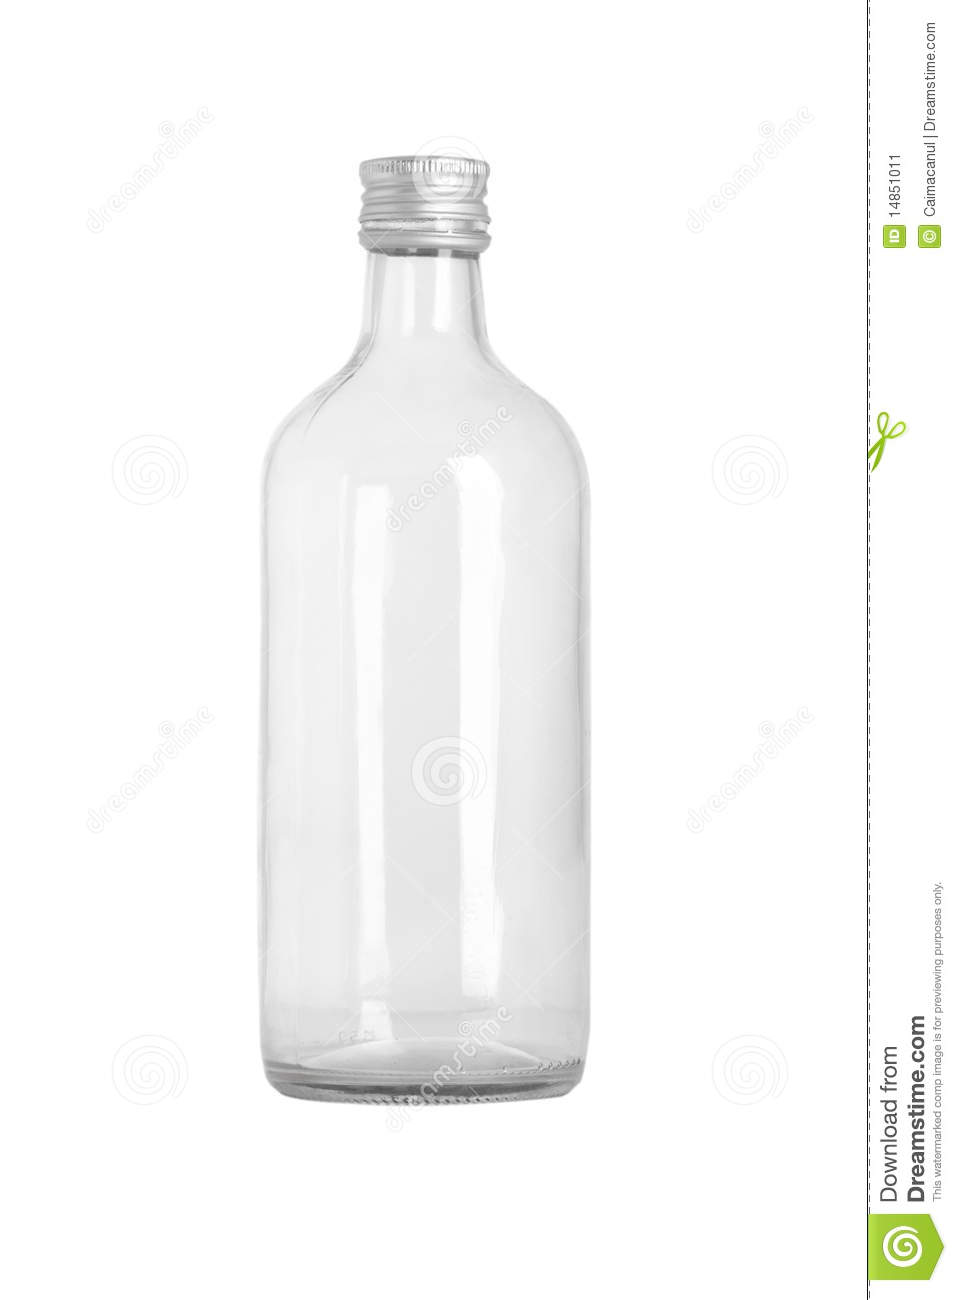 Front view of transparent glass bottle